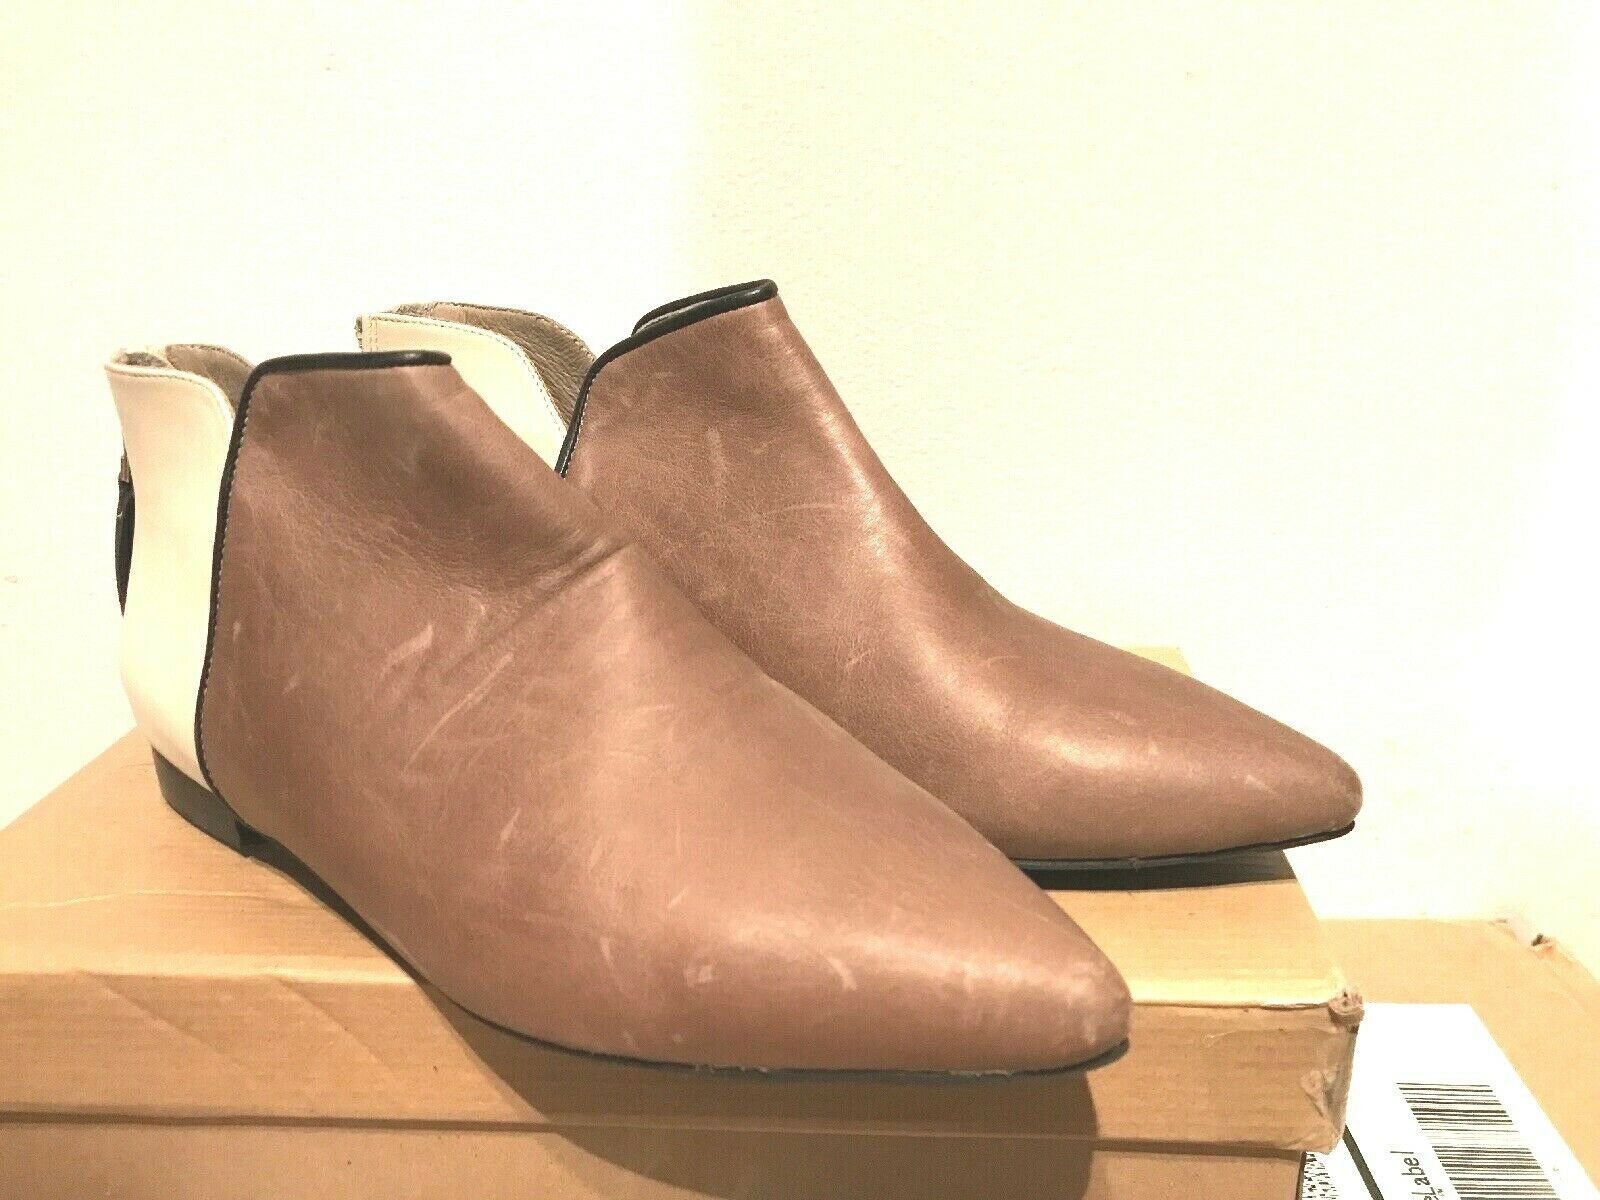 DANIELLA LEHAVI  TOULOUSE TAUPE BEIGE BEIGE BEIGE LEATHER ANKLE BOOTS 39   8  NEW 4b6613